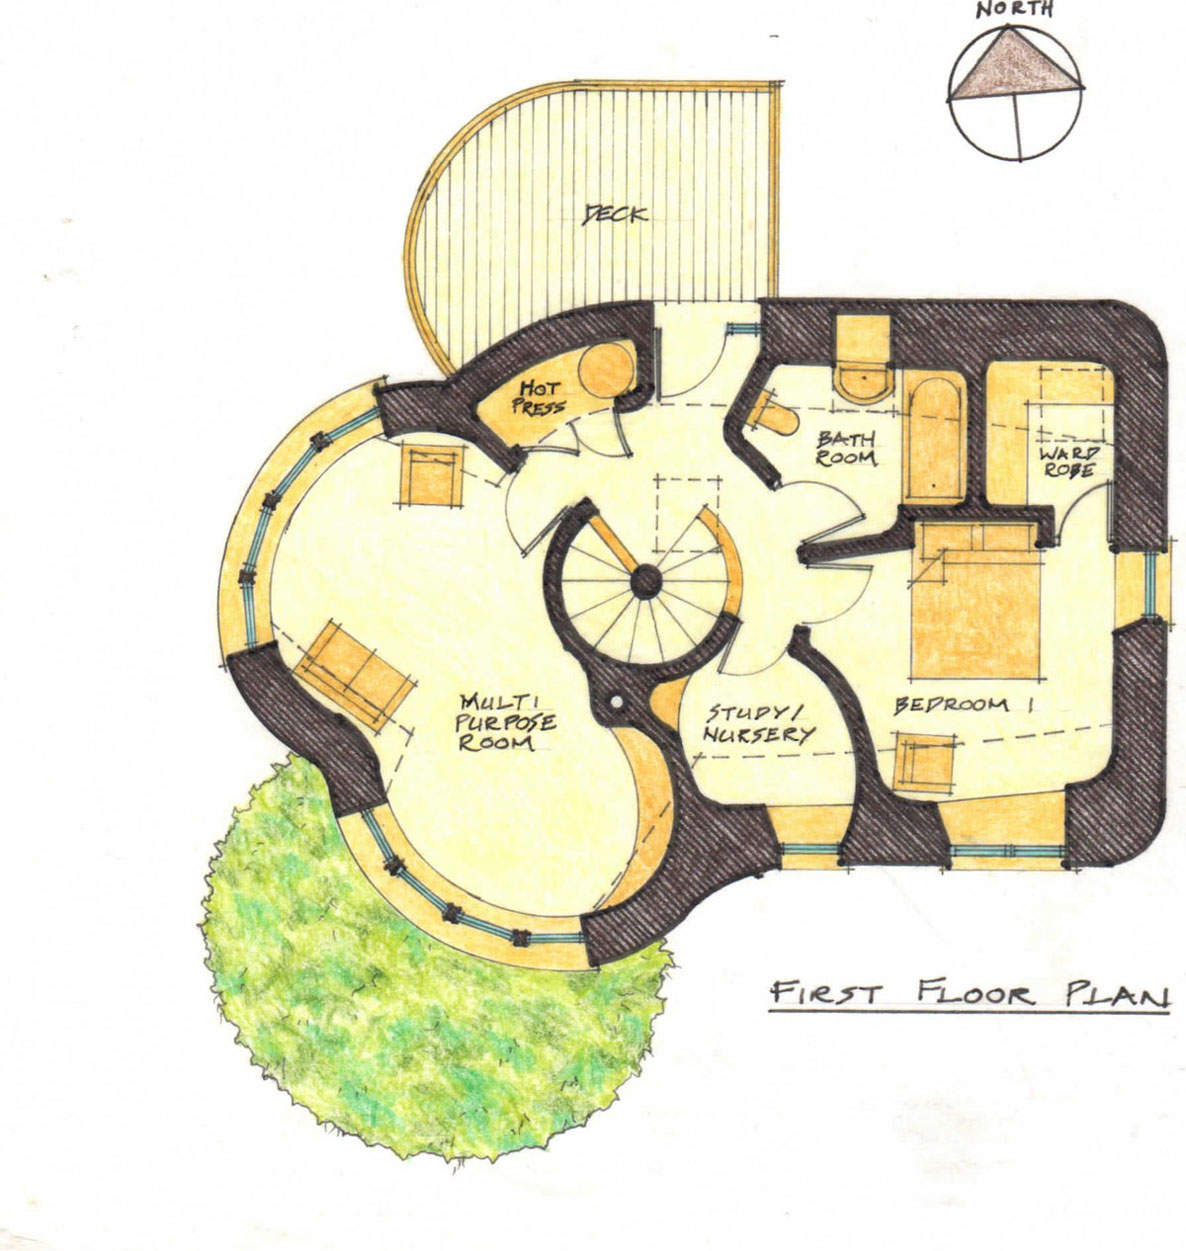 Sick cob house plans off grid pinterest floor for Floor framing plan